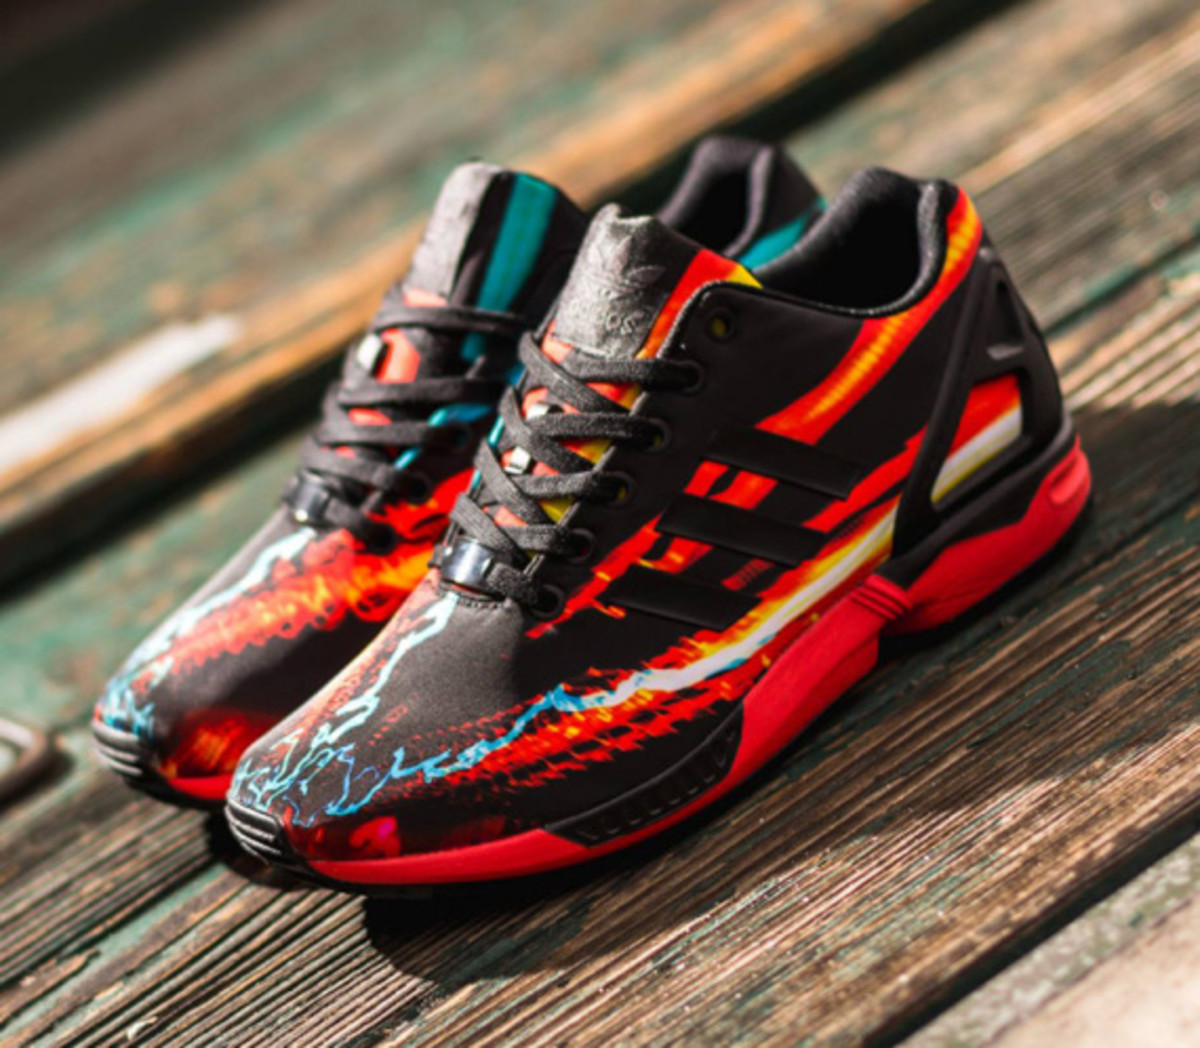 adidas ZX Flux - Red/Core Black/Carbon - 0